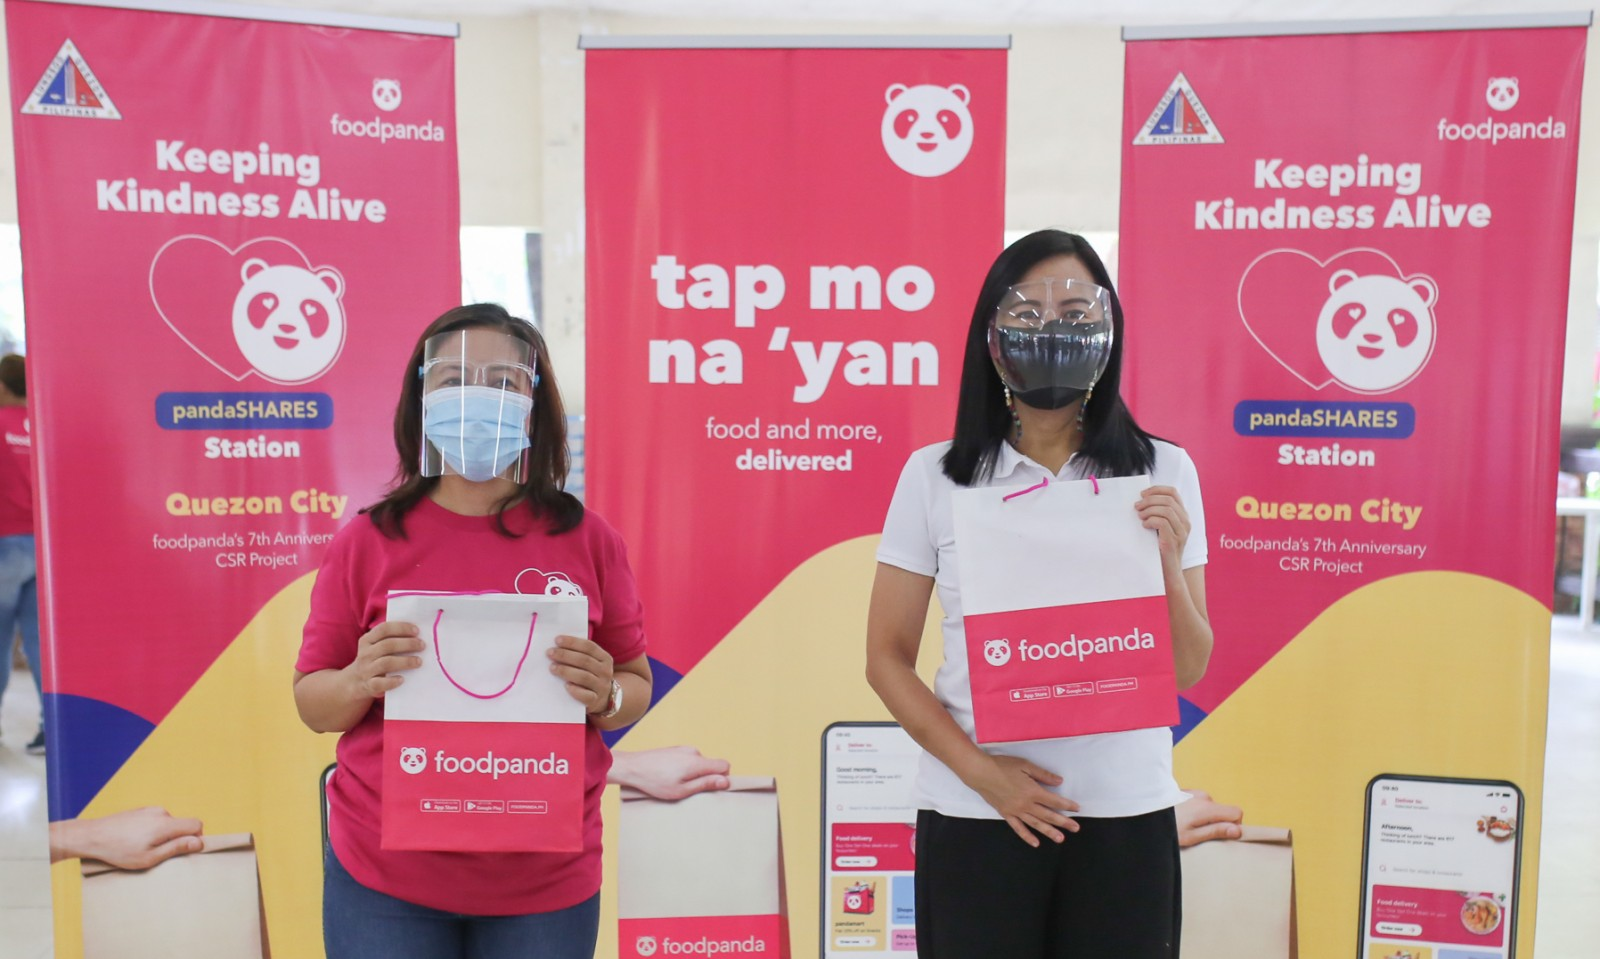 foodpanda celebrates 7th anniversary with CSR blowout, donates goods and meals to medical frontliners and communities